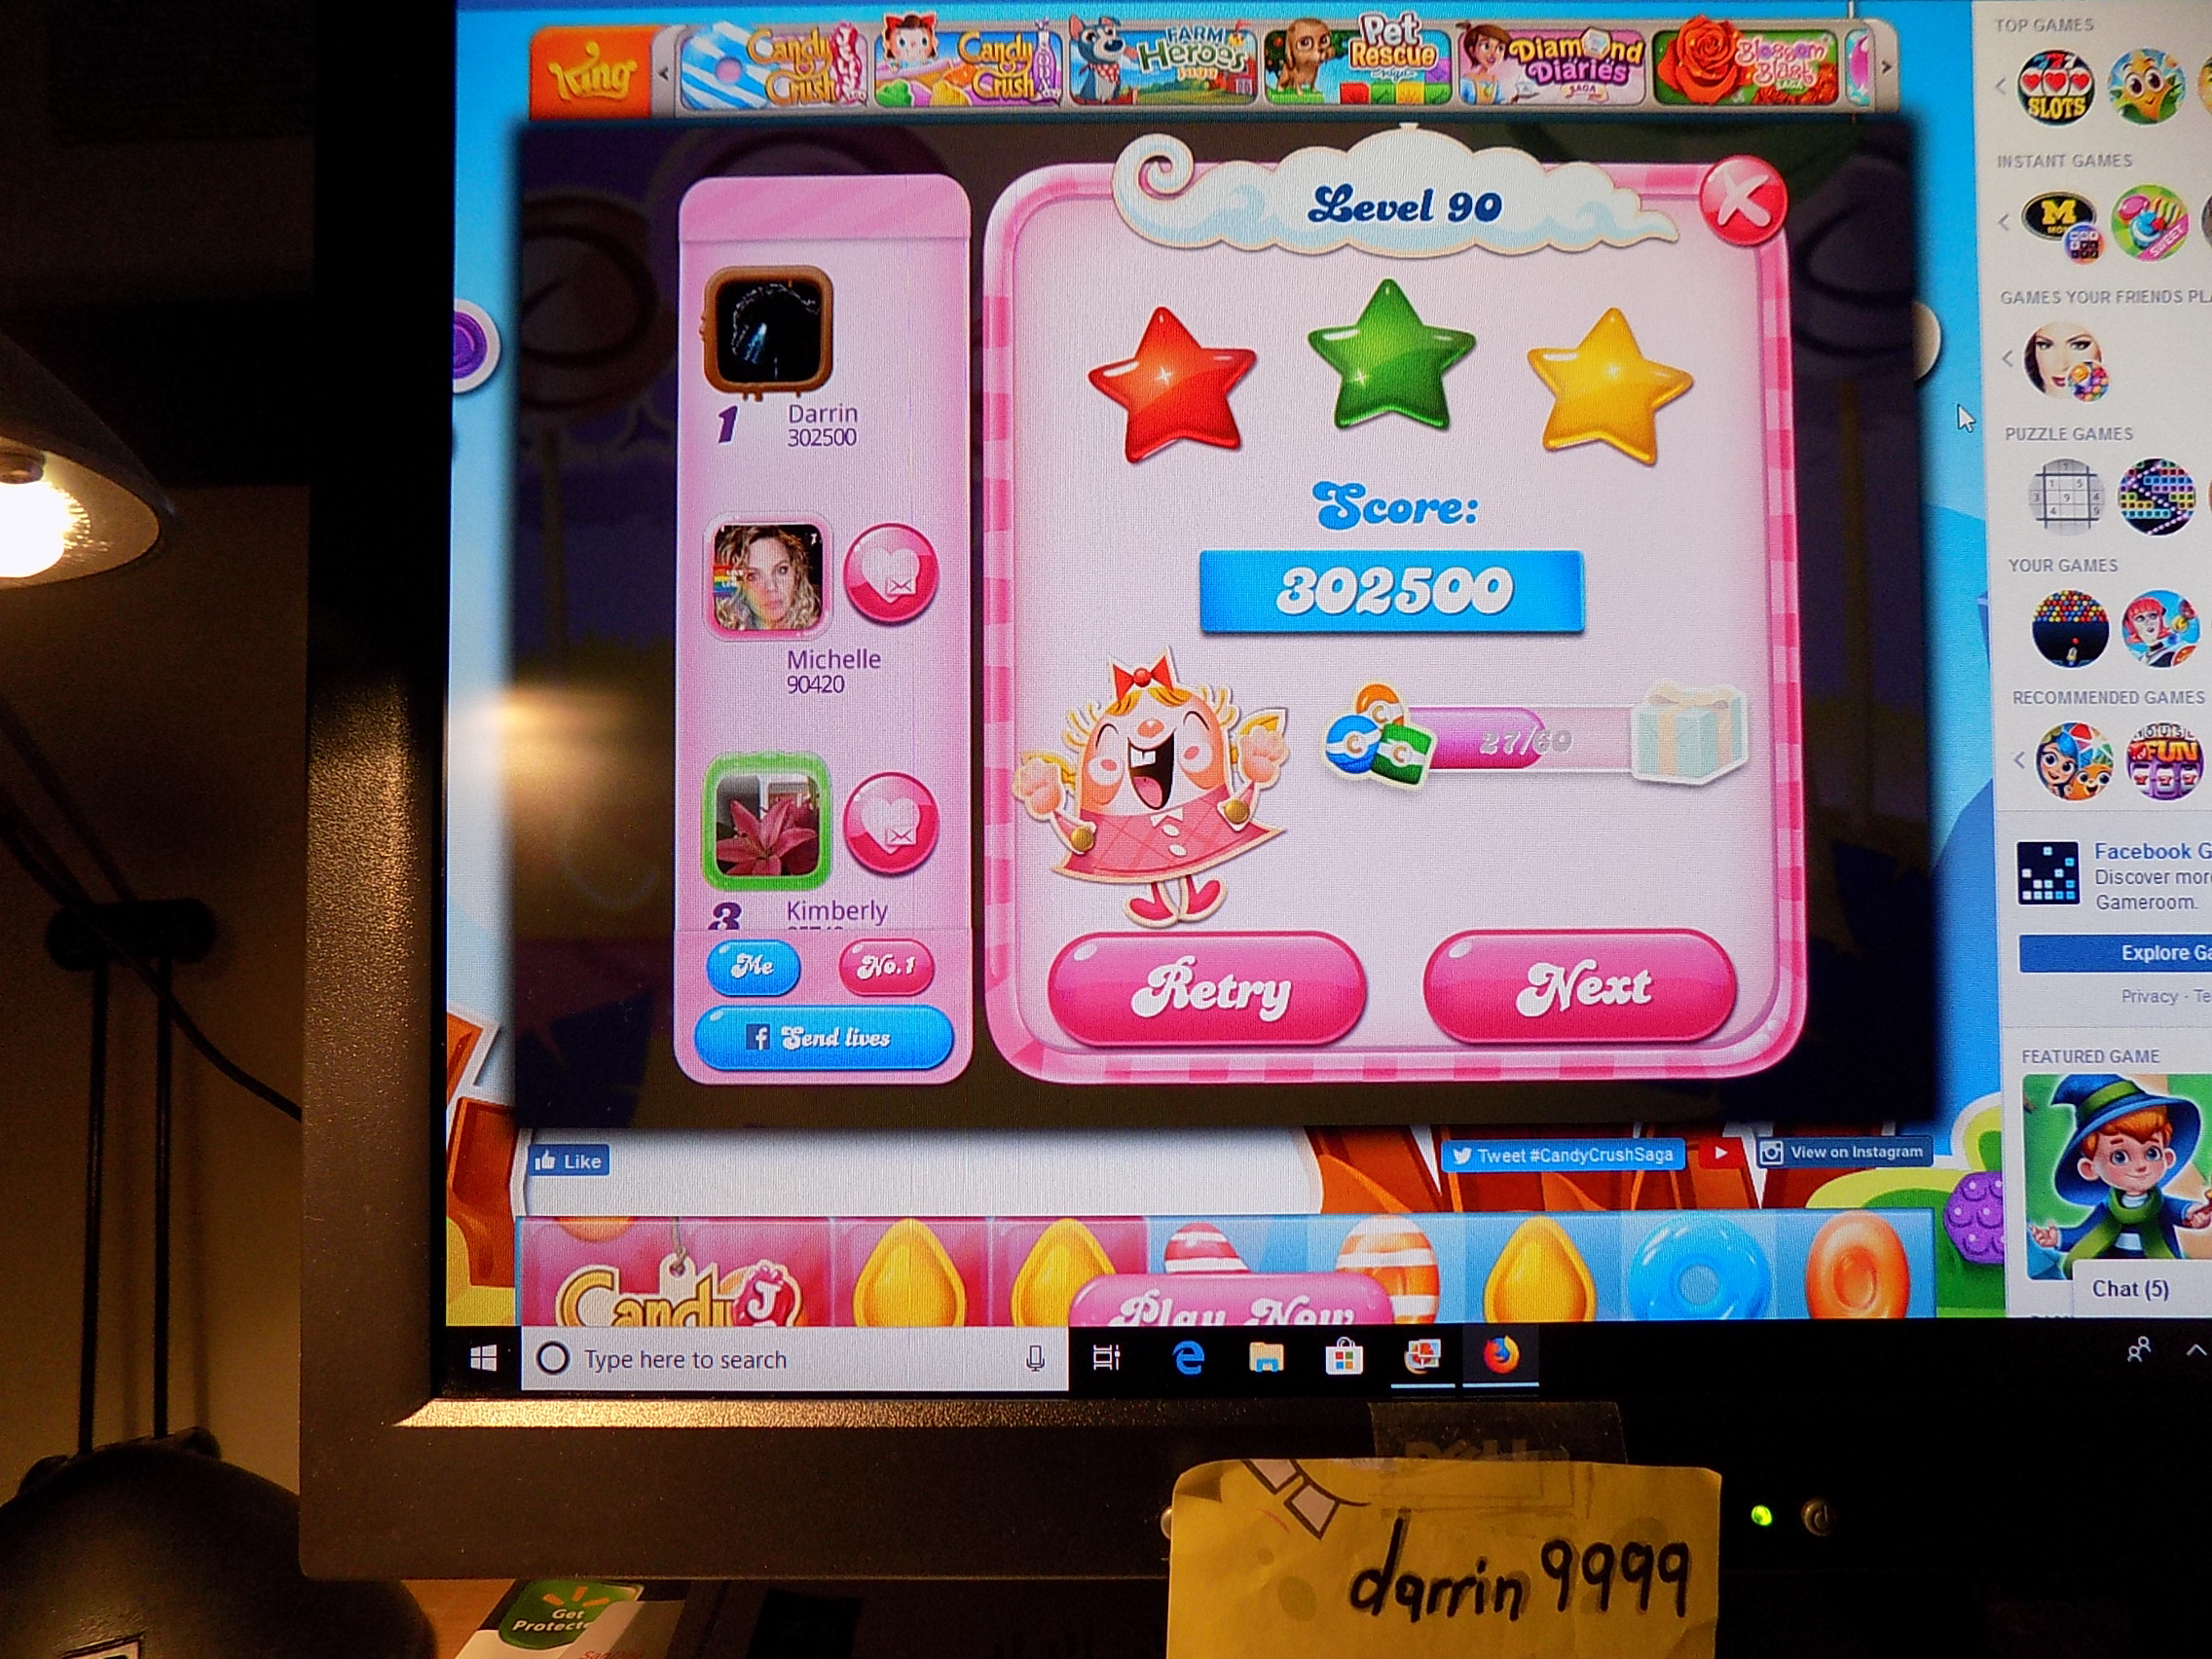 darrin9999: Candy Crush Saga: Level 090 (Web) 302,500 points on 2019-06-18 17:20:56